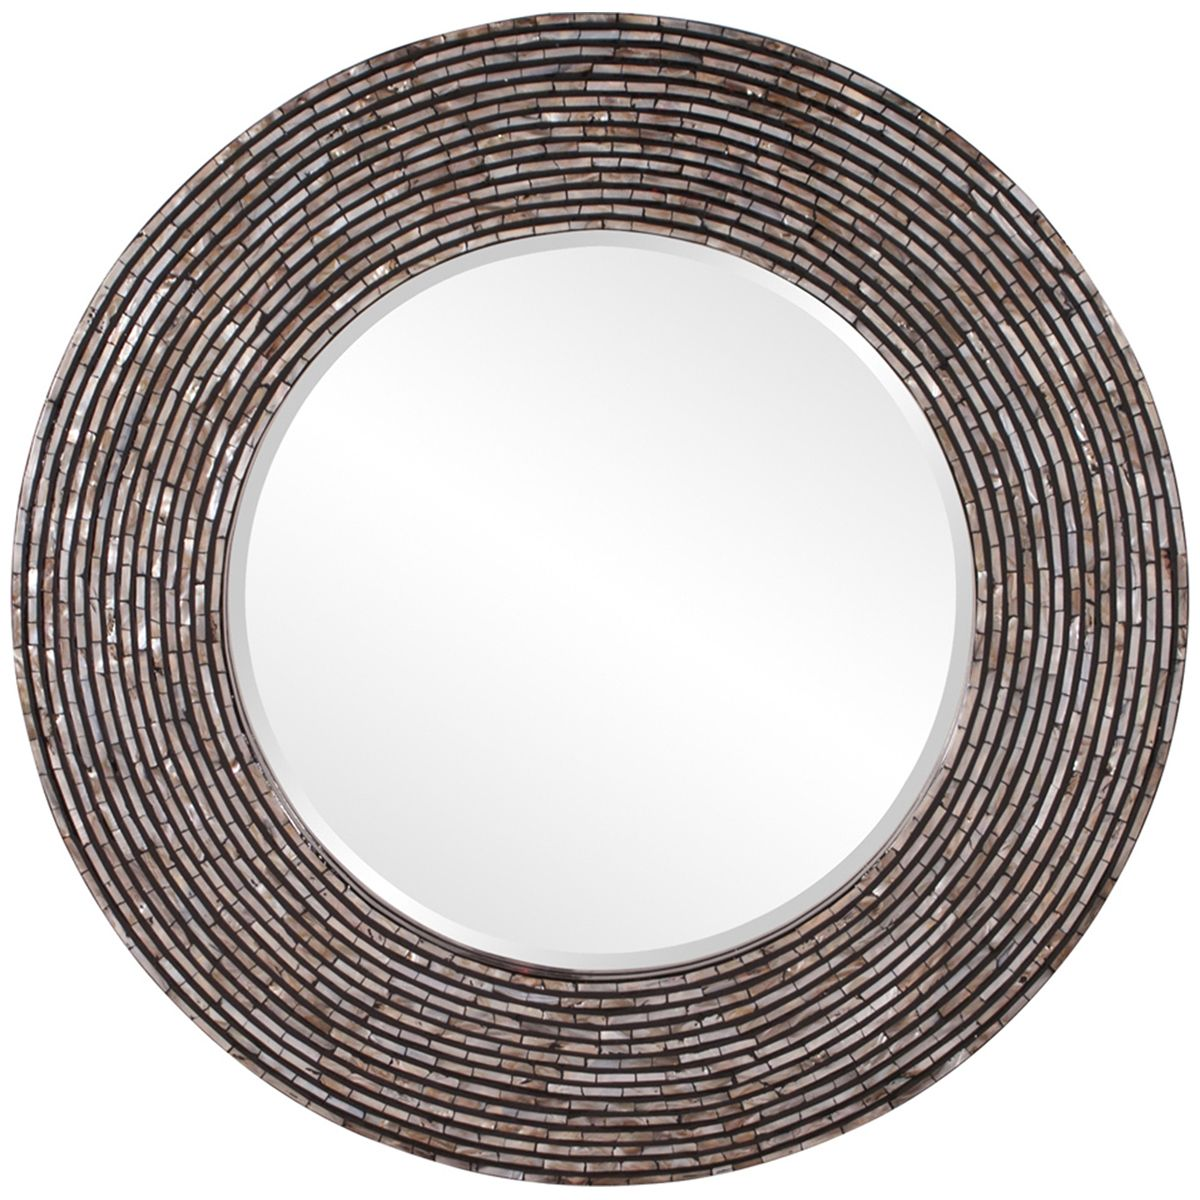 Howard Elliott Orlando Round Mother Of Pearl Mirror 25096